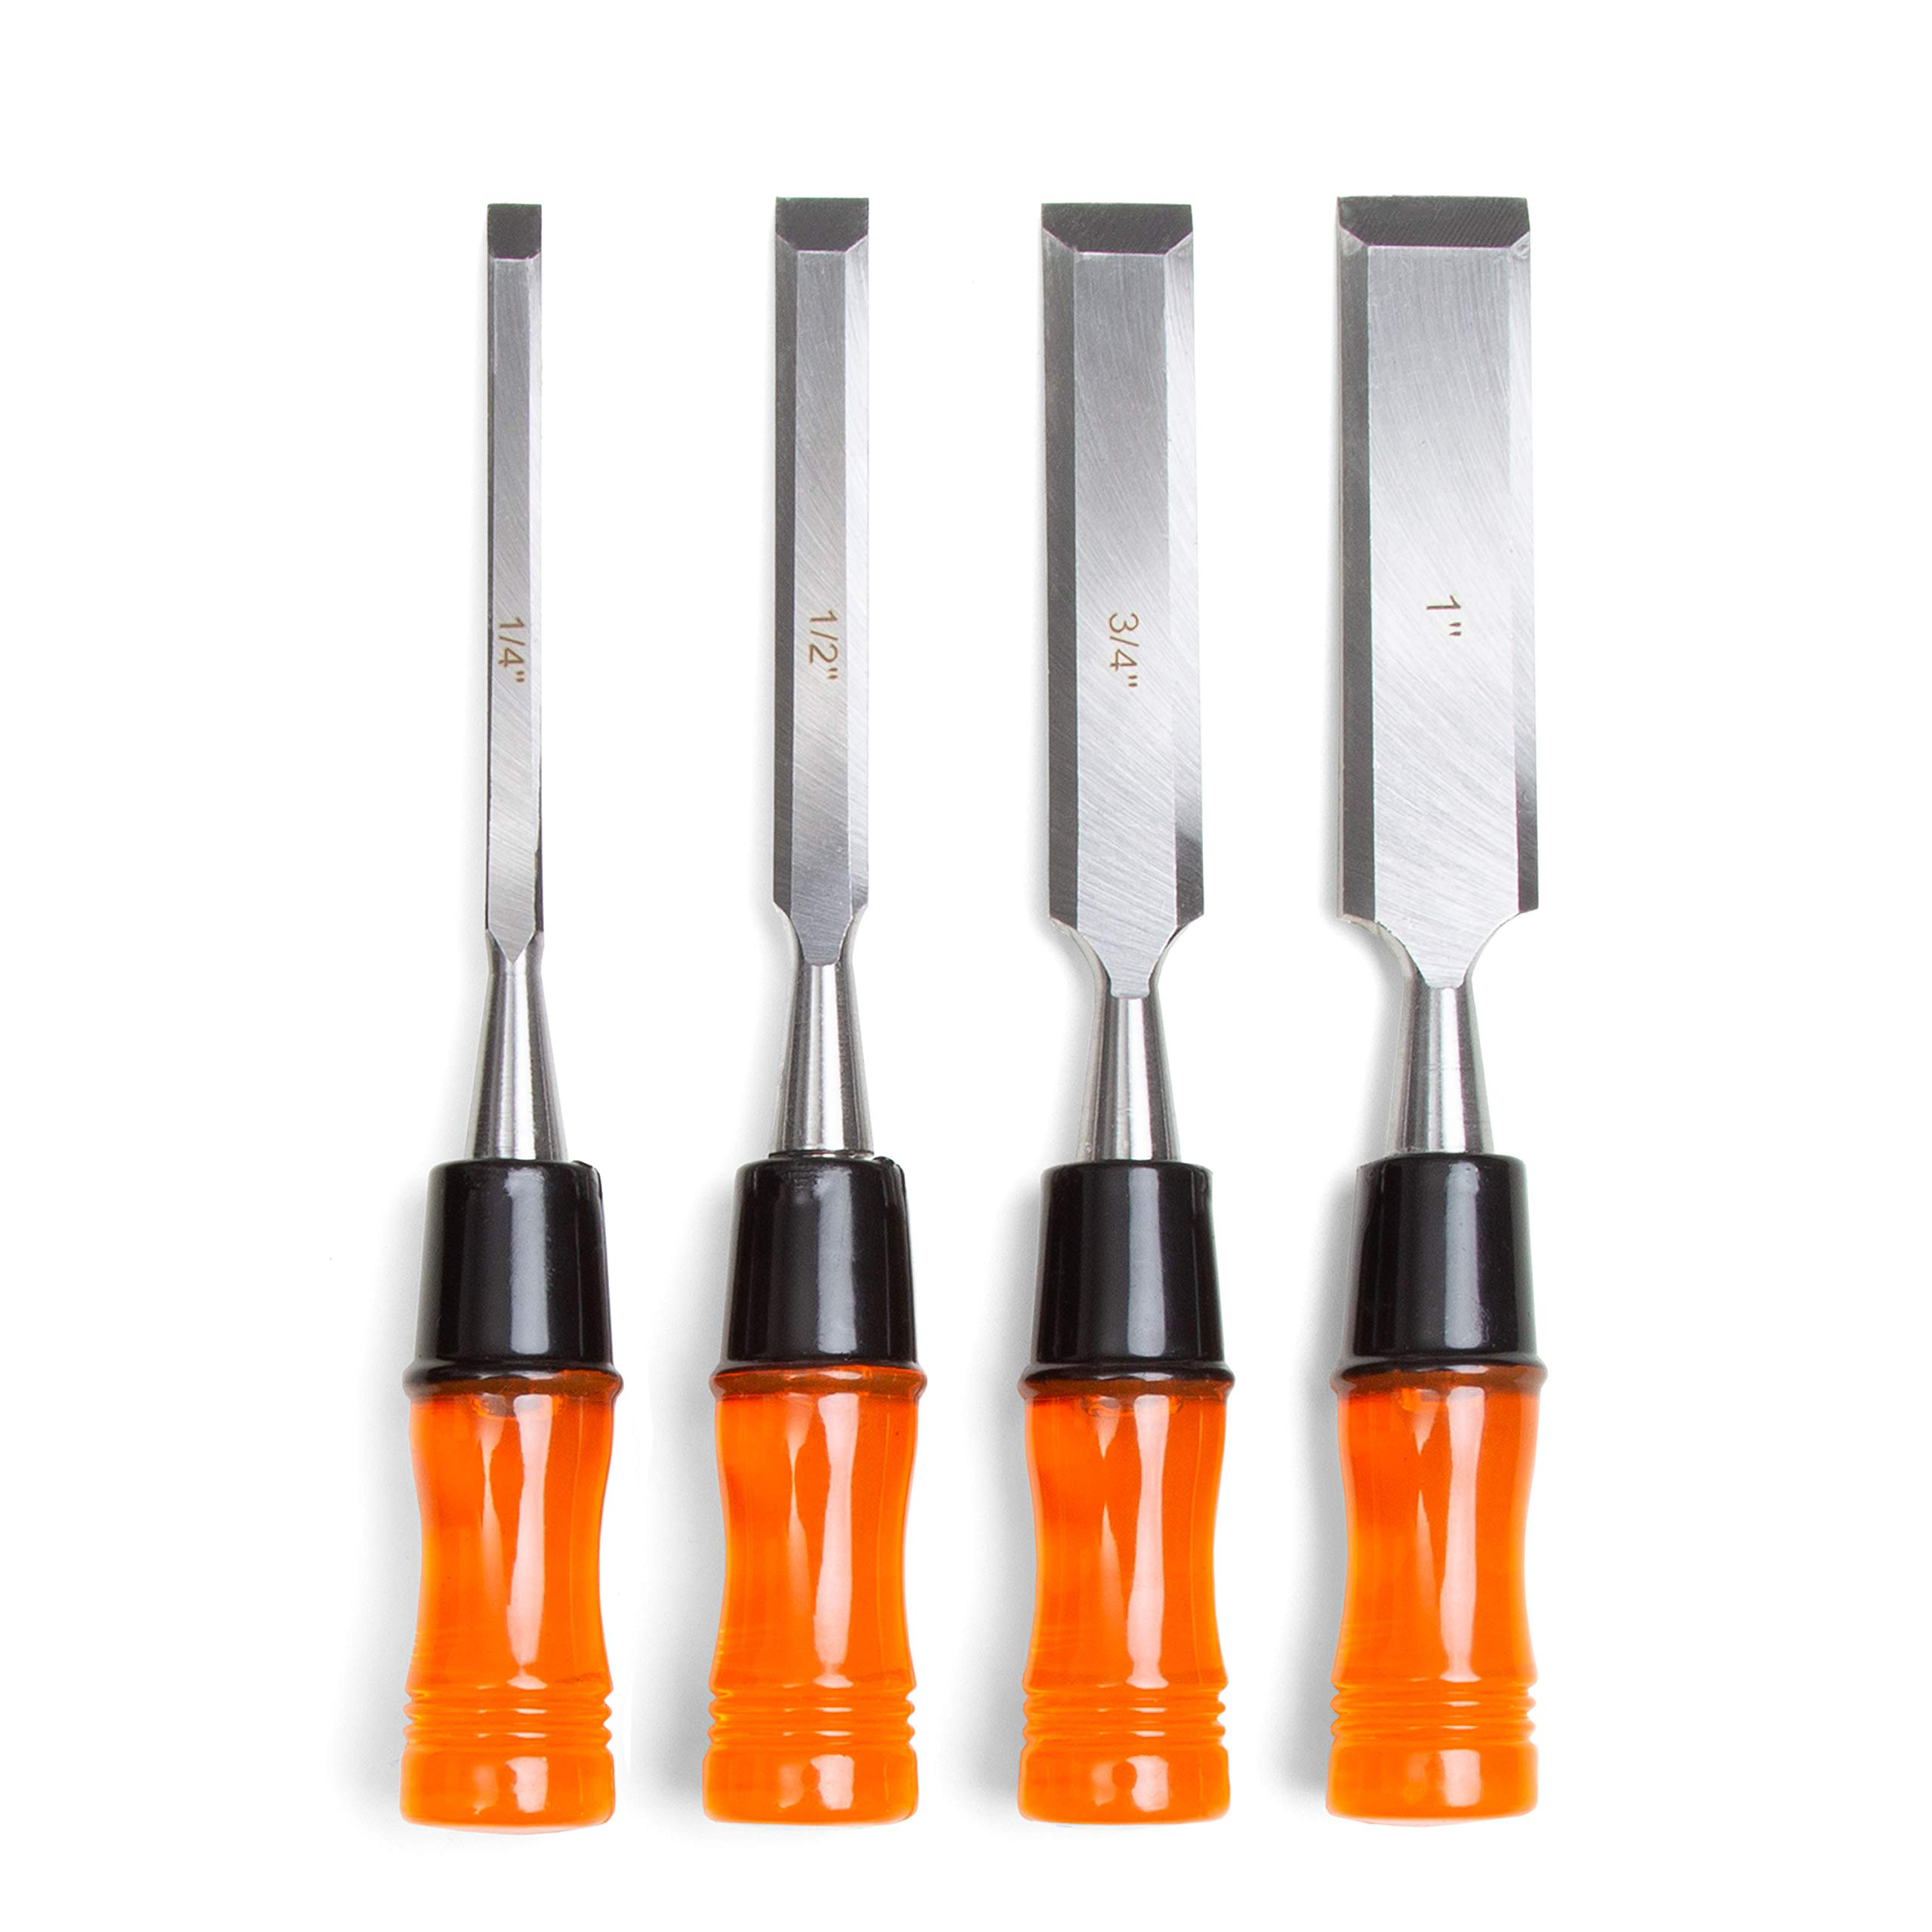 Woodworking Chisel Set, 4 Piece - Wood Hand Tools for Carving and Carpentry - Includes 4 Chisels and Carry Pouch